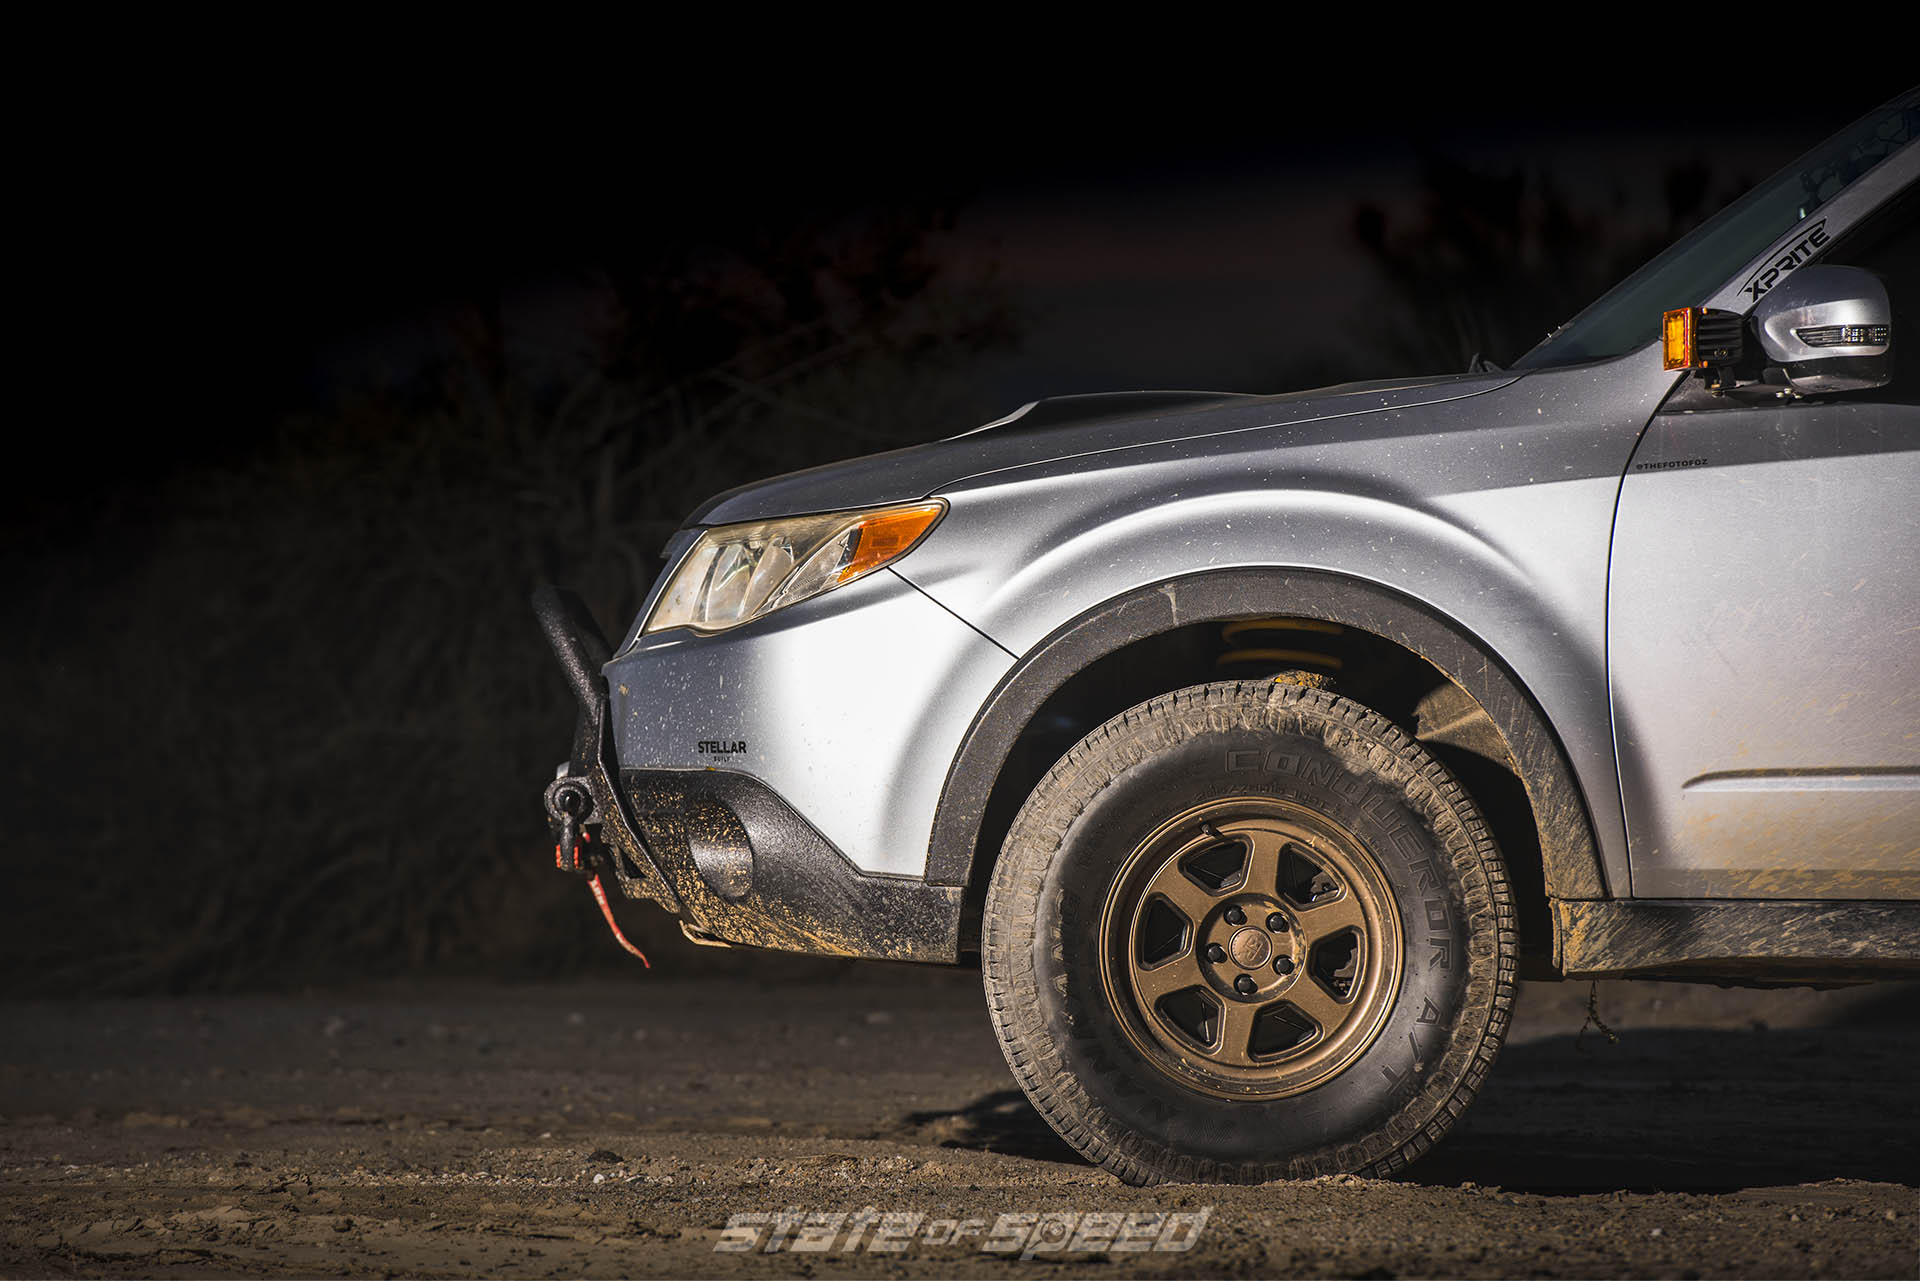 Subaru Forester on Battle Ready Rumble Cast wheels with Nankang Conqueror A/T Tires